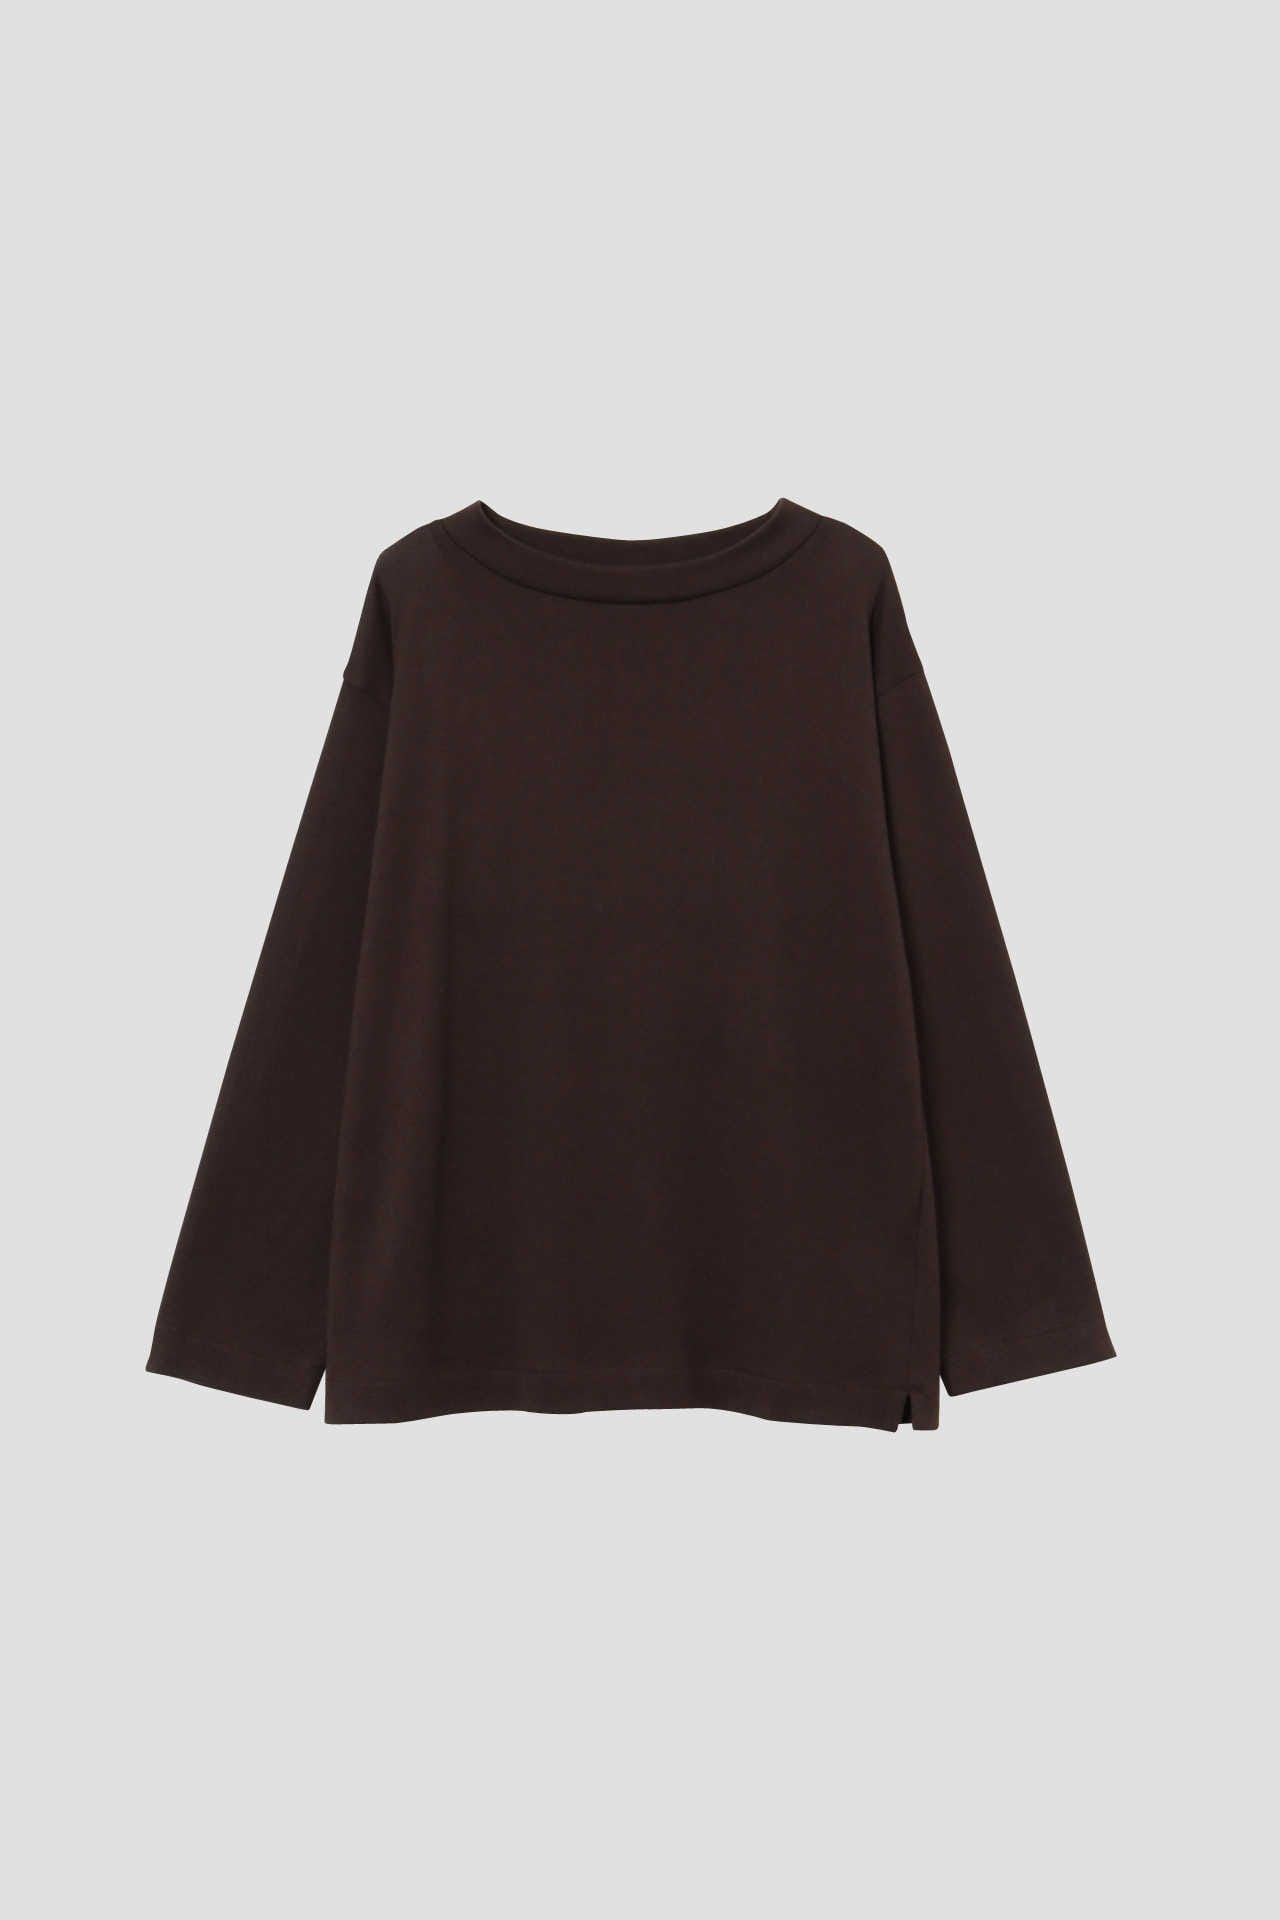 WARM COTTON CASHMERE JERSEY7